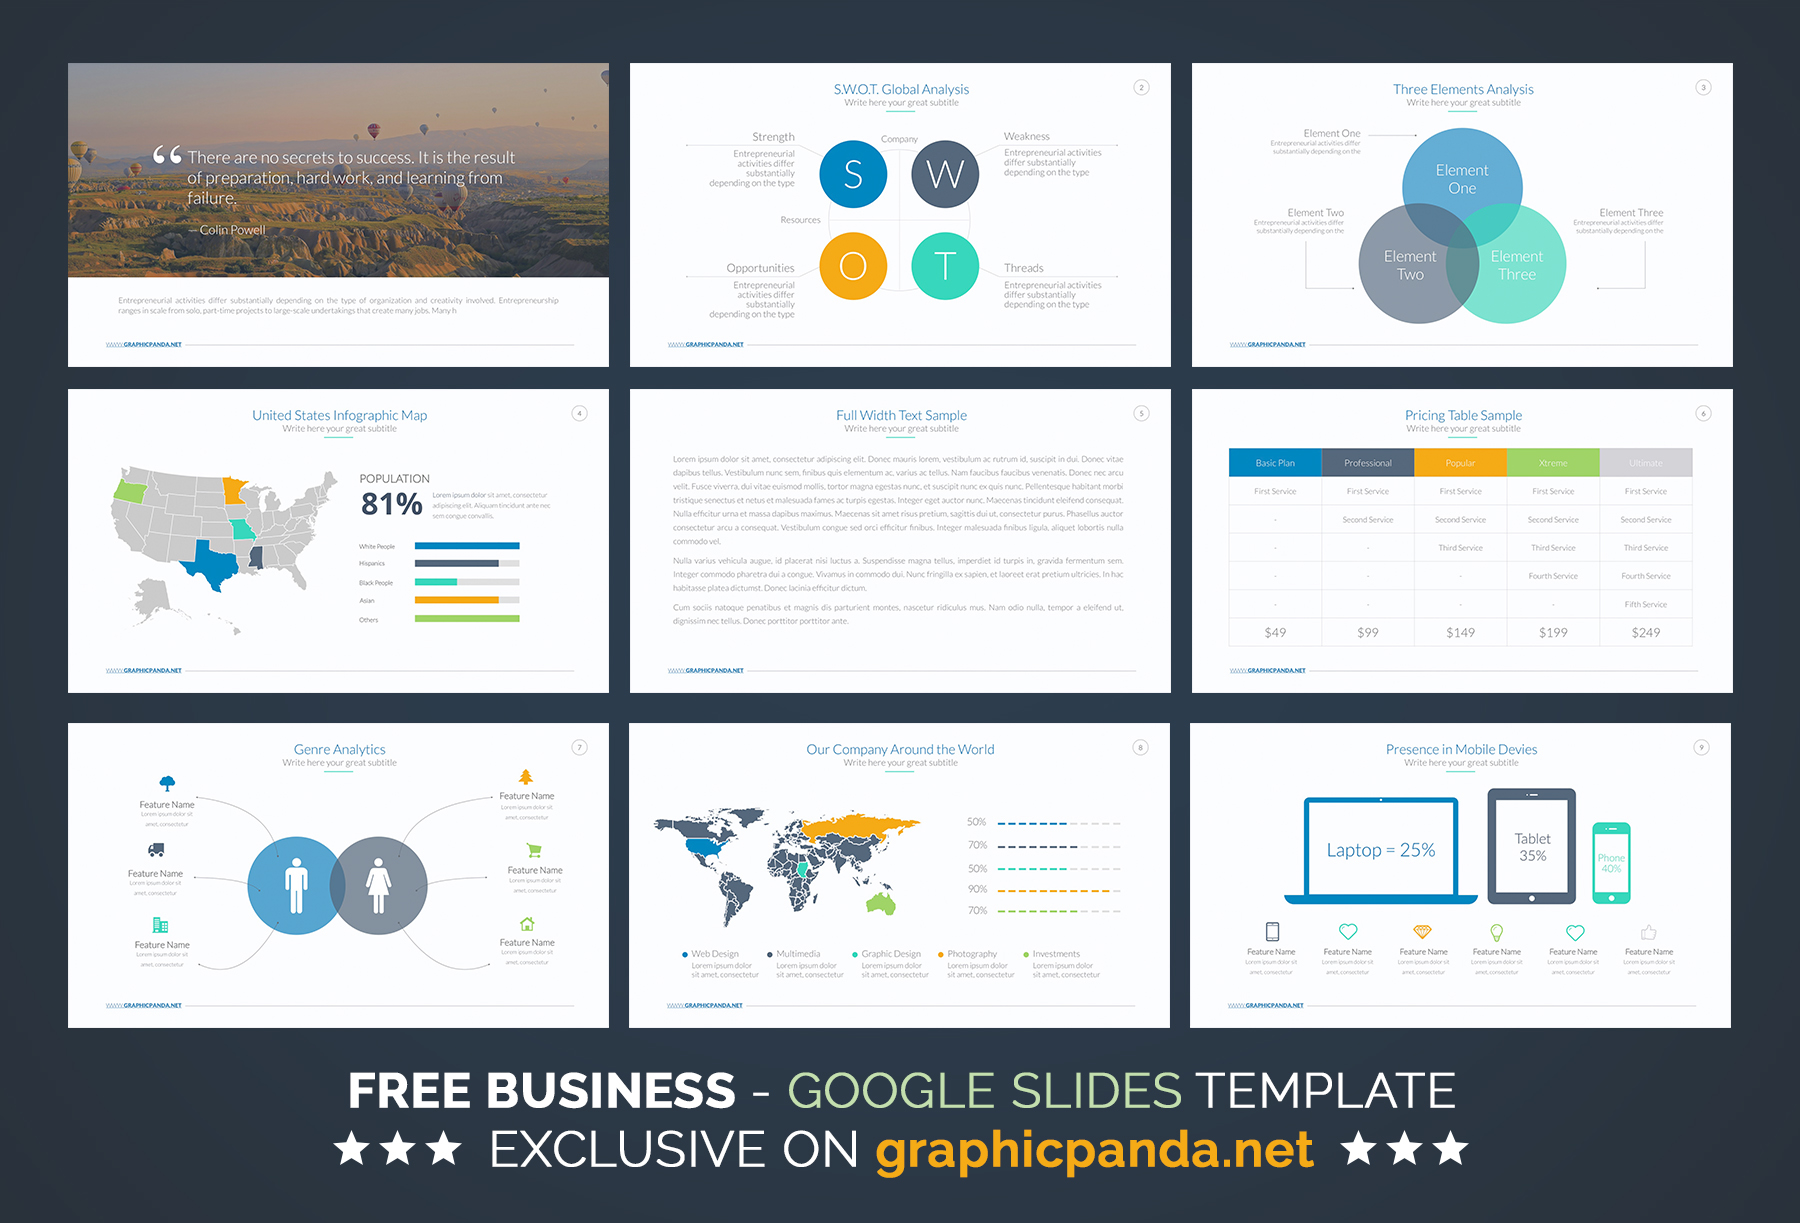 Free business plan google slides template on behance friedricerecipe Image collections